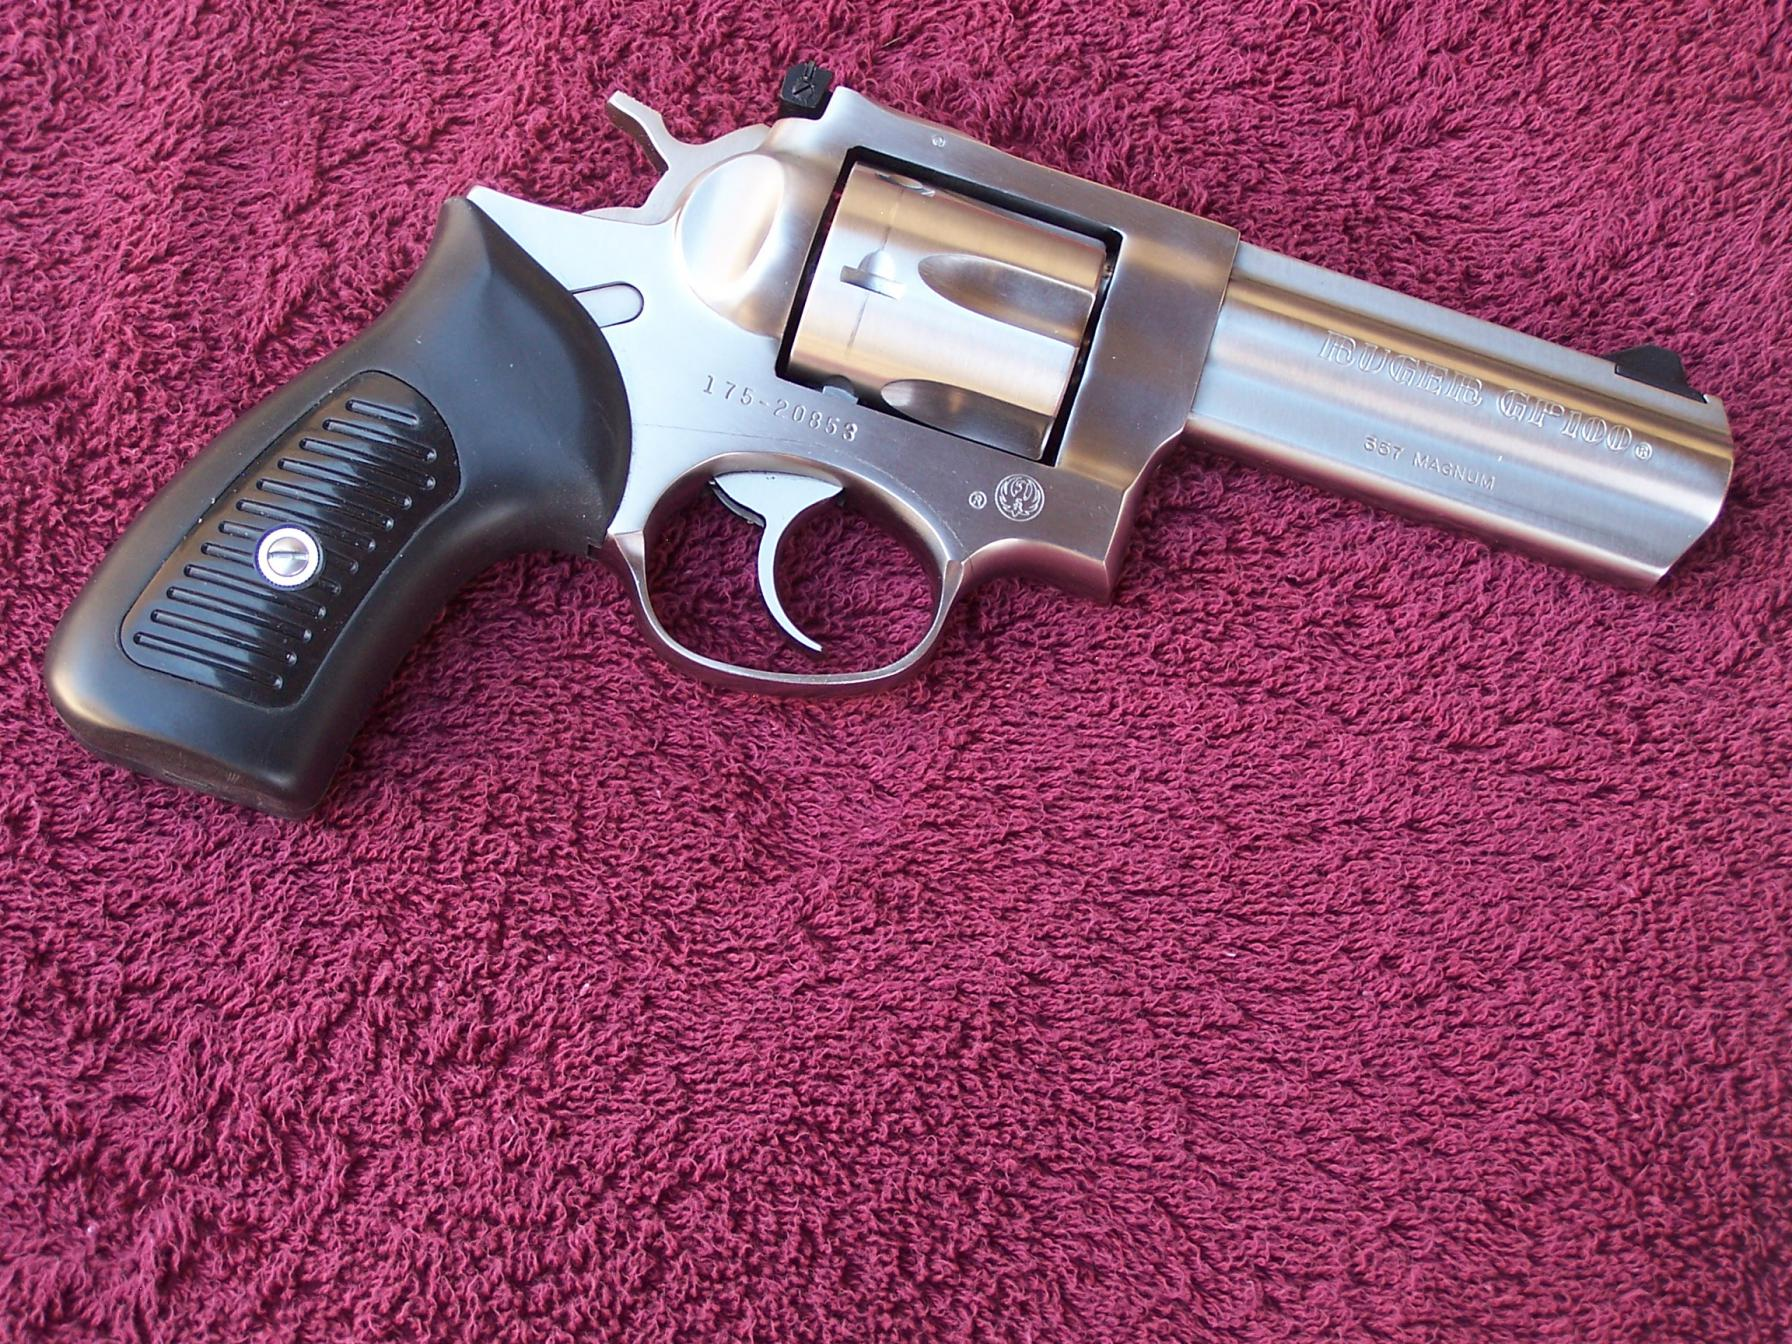 Ruger GP100 or S&W 686 Which one?-012.jpg